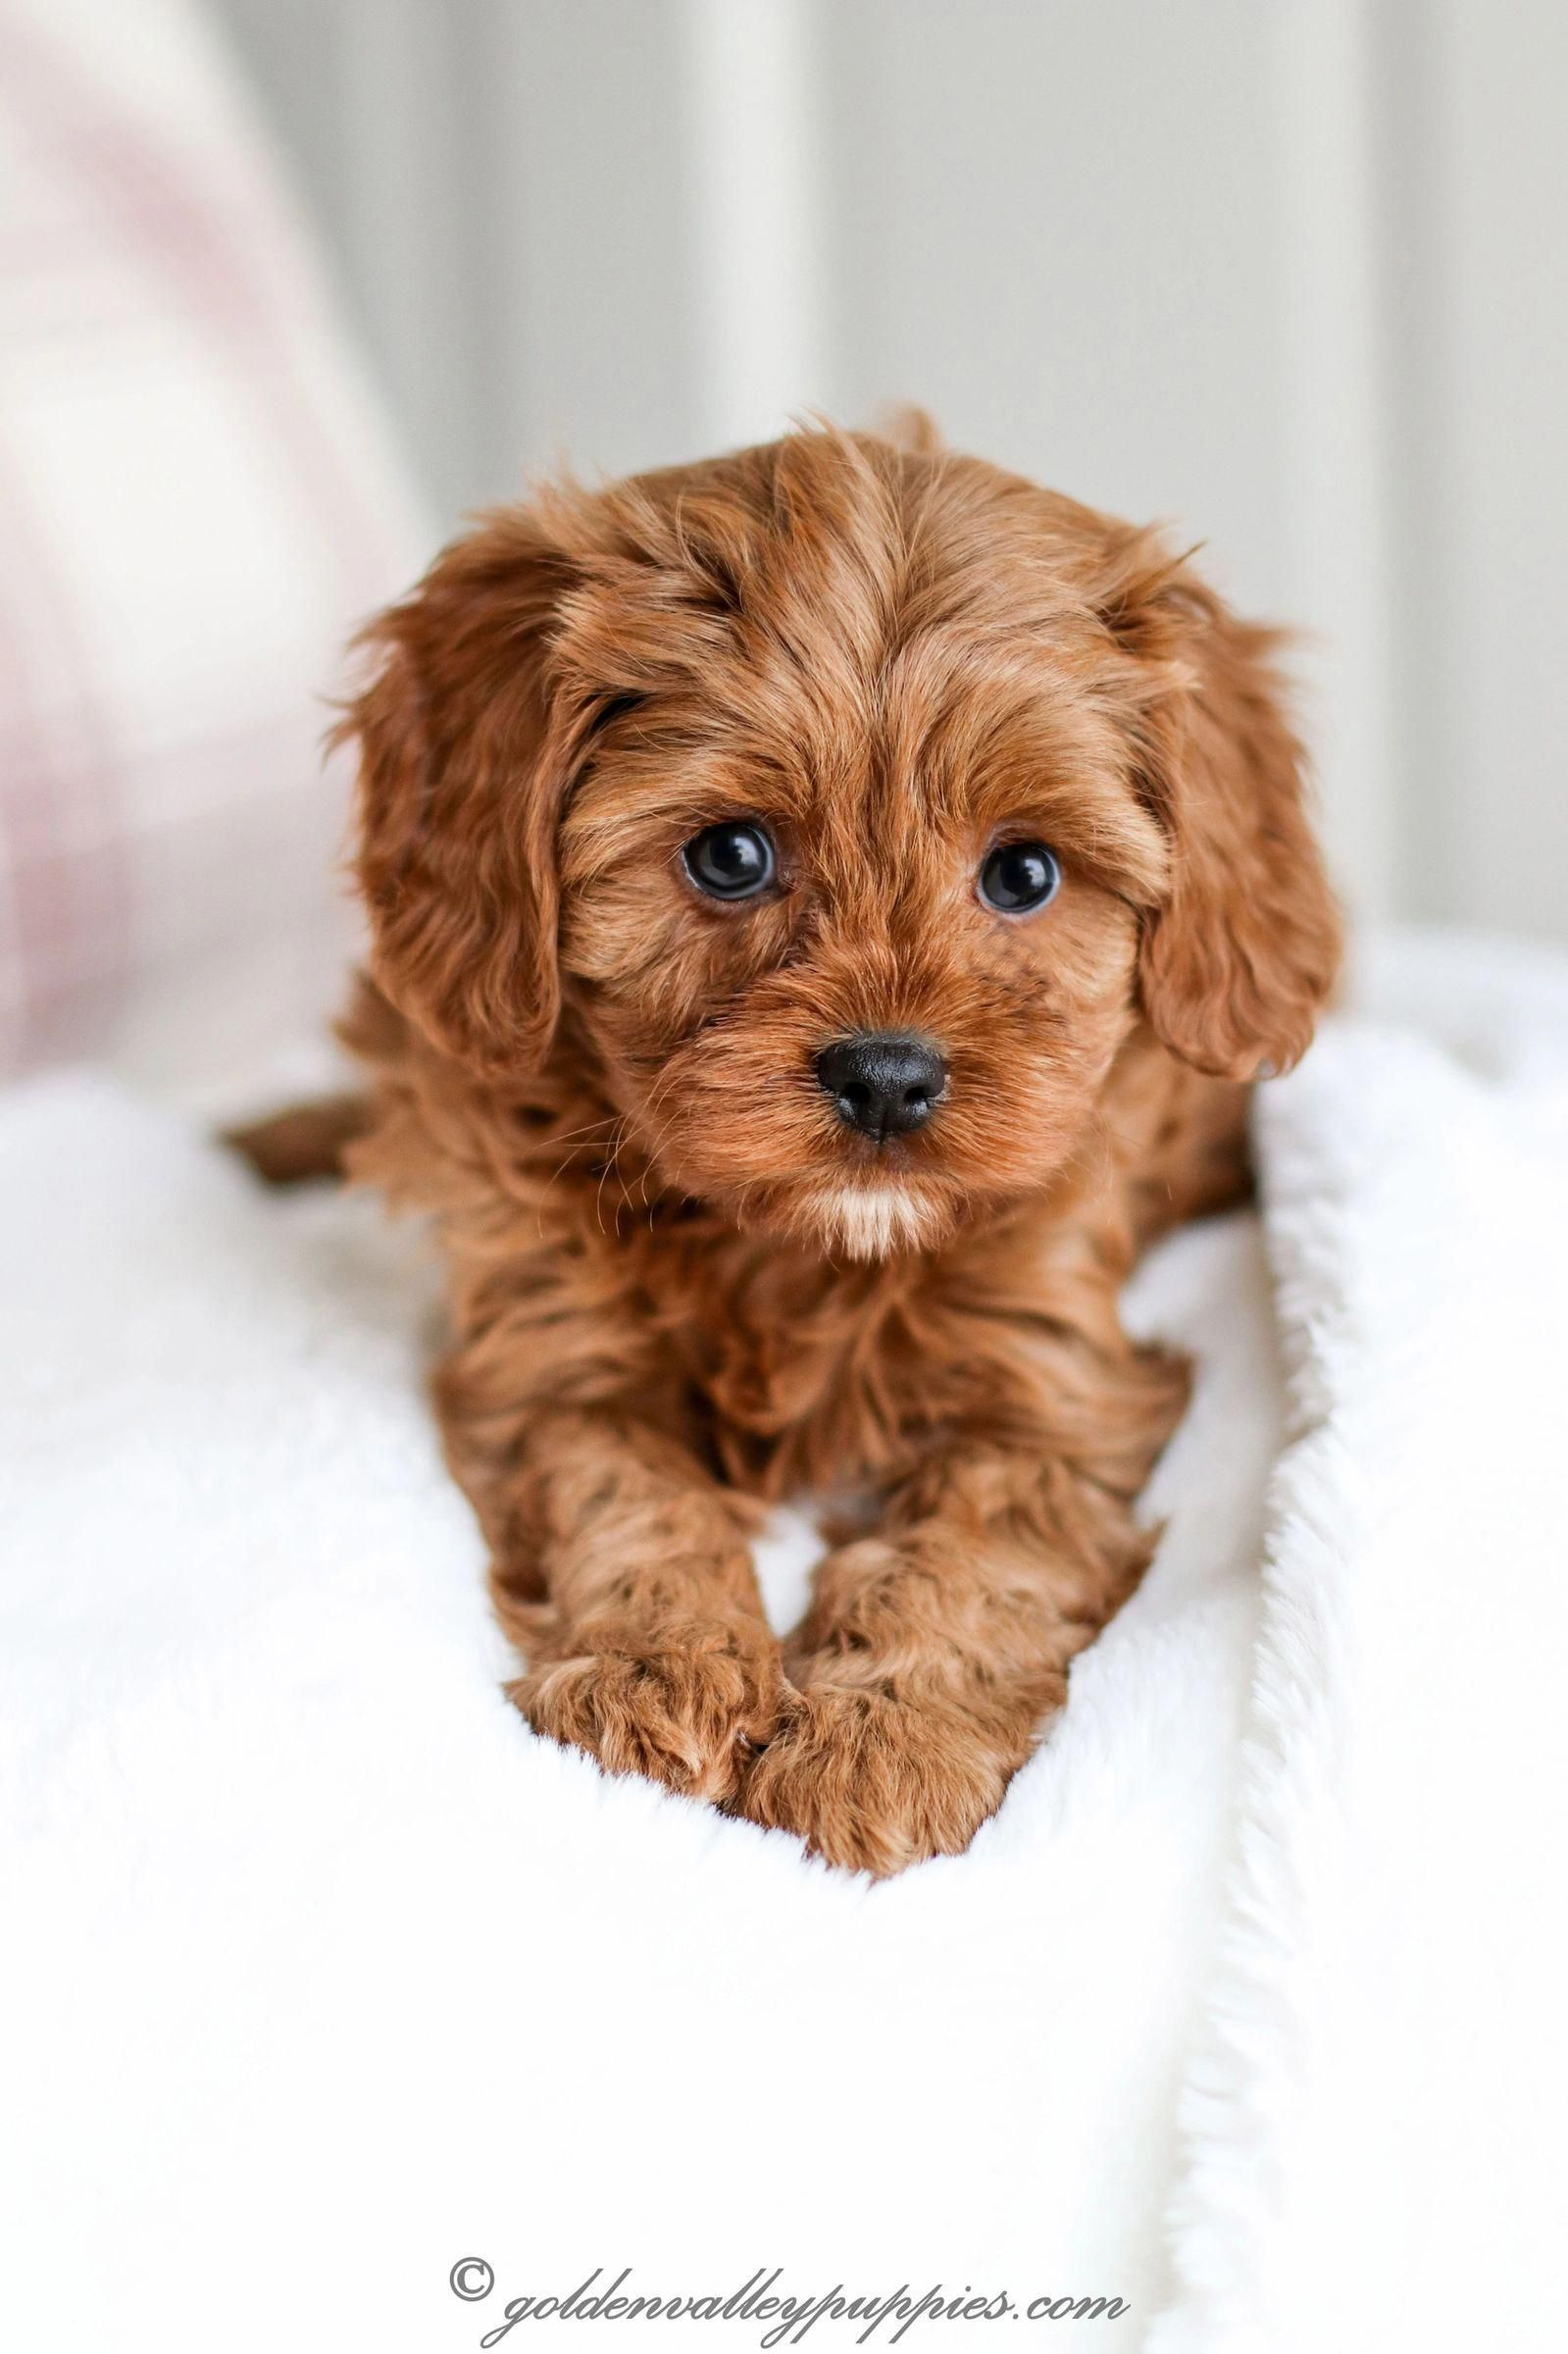 Pin By Sydney Steinbring On Chewie In 2020 Cavapoo Puppies Cavapoo Puppies For Sale Cute Dogs And Puppies